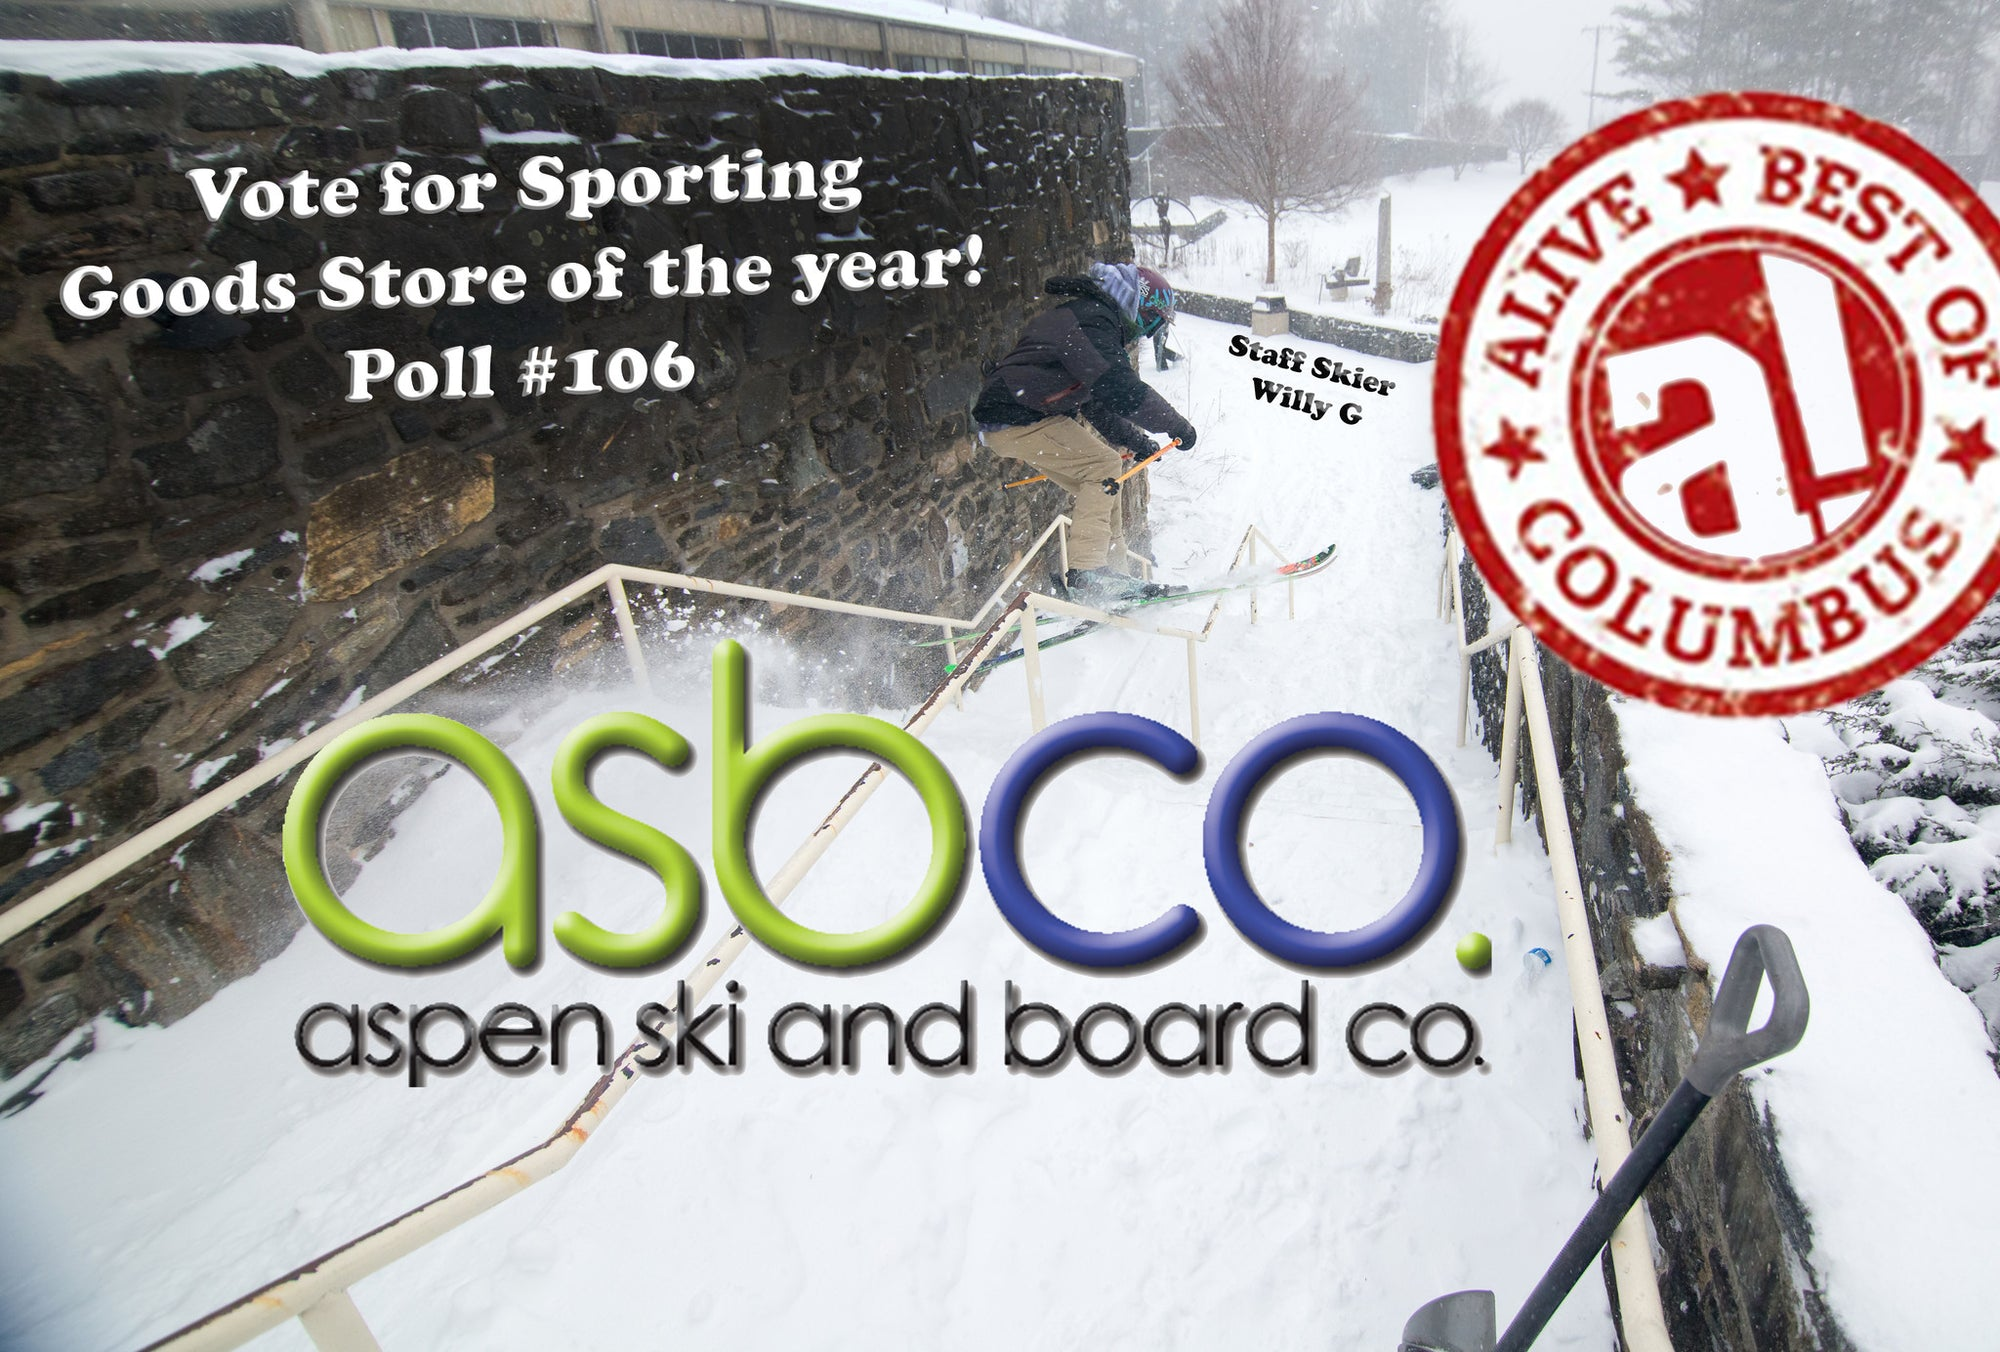 Aspen Ski and Board has been nominated by Columbus Alive for best Sporting Goods Store in Columbus